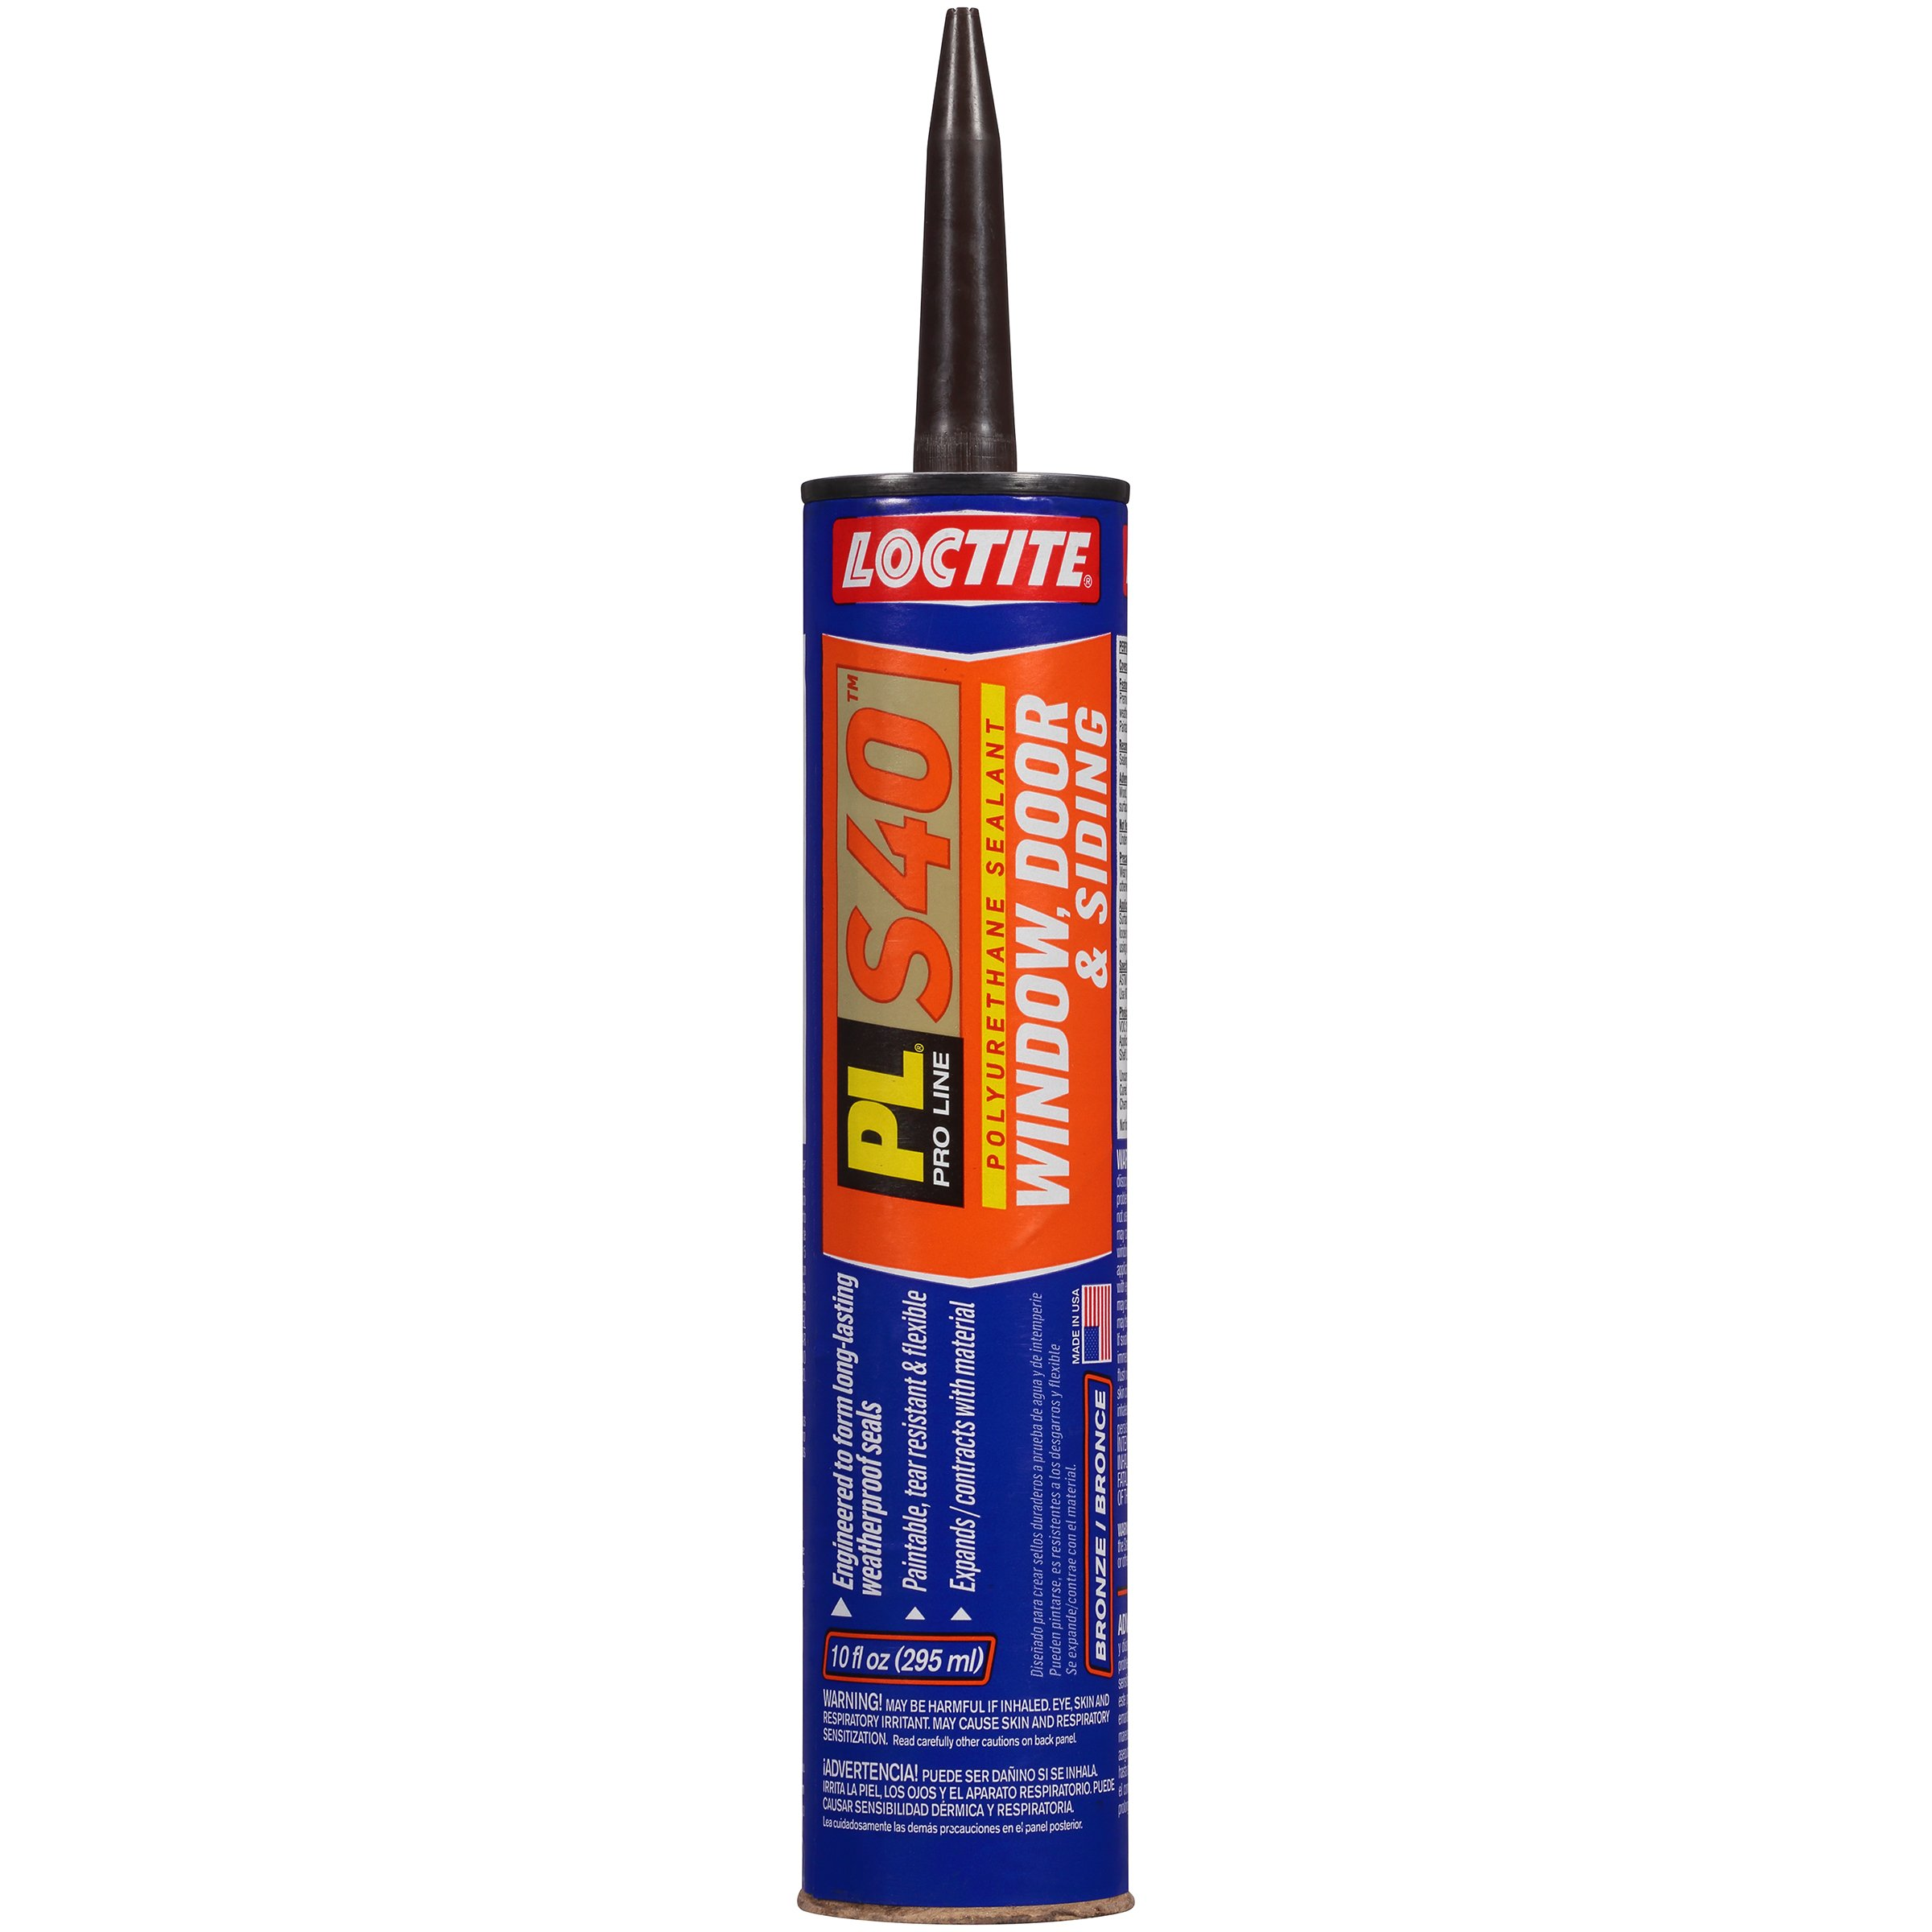 Loctite PL S40 Polyurethane Window, Door and Siding Sealant, 10 Ounce Cartridge, Bronze, 12-Pack (1618175-12)